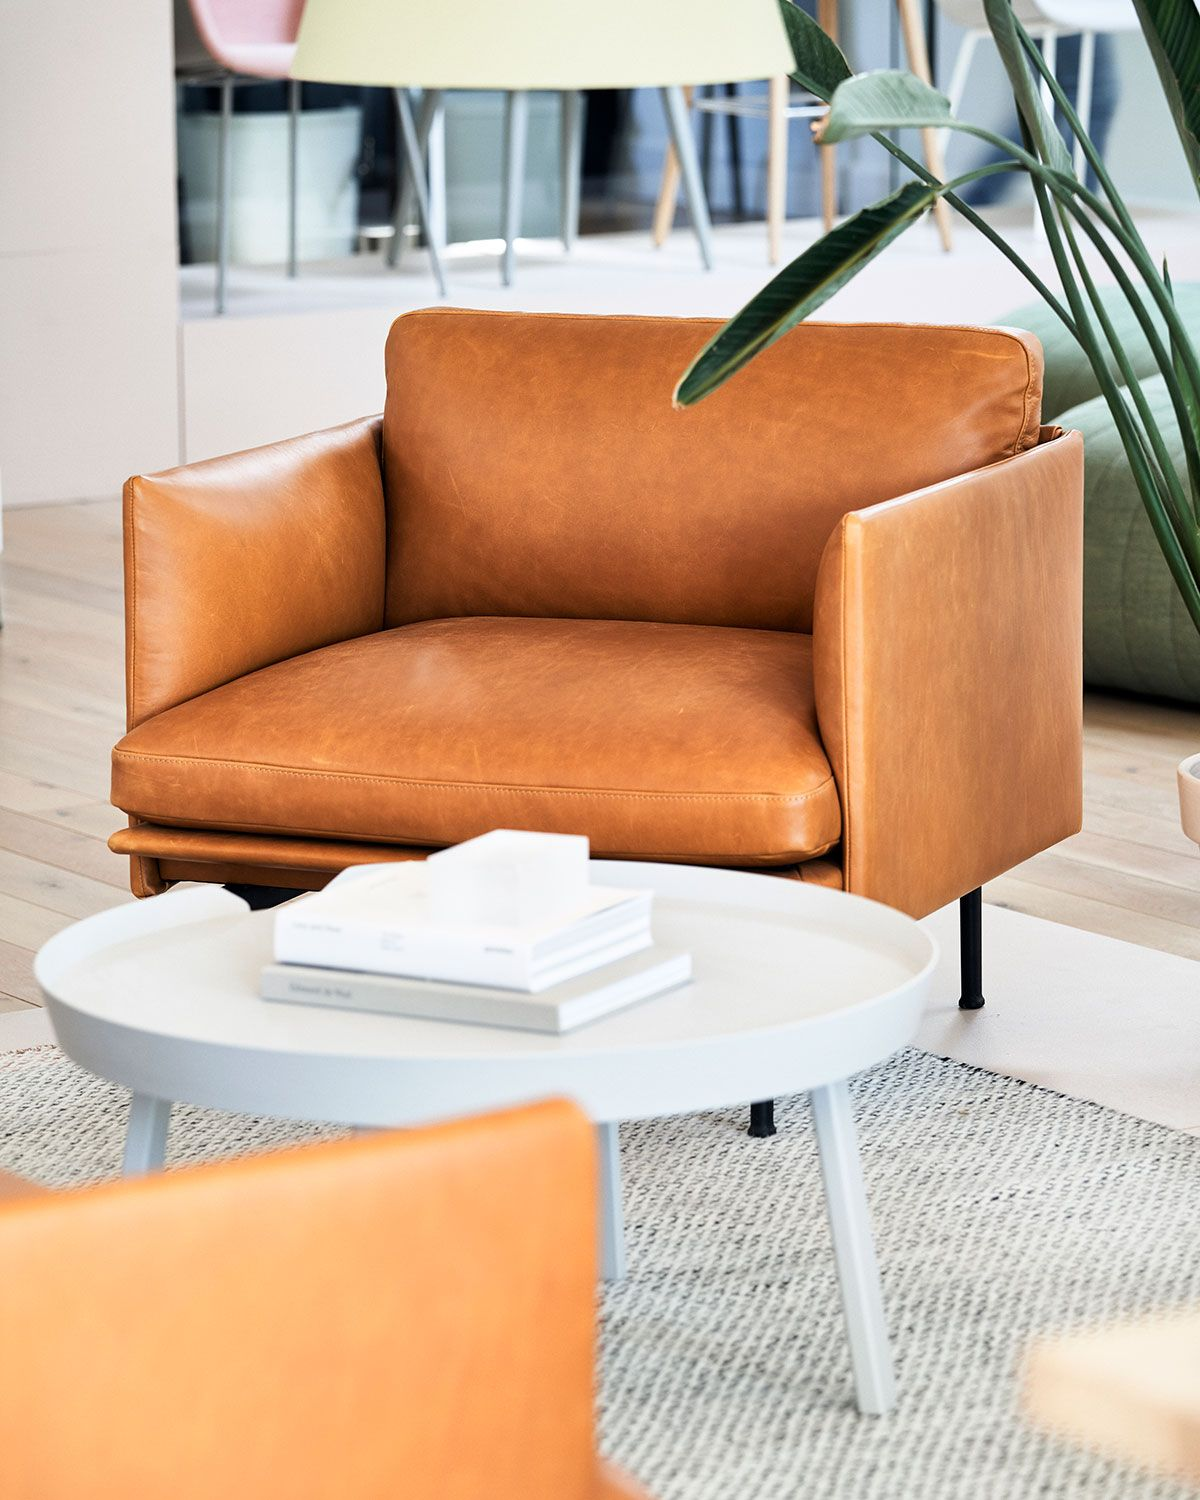 The Outline Series Adds New Perspectives To The Classic Scandinavian Design Sofas Of The 1 In 2020 Scandinavian Sofa Design Elegant Chair Scandinavian Furniture Design